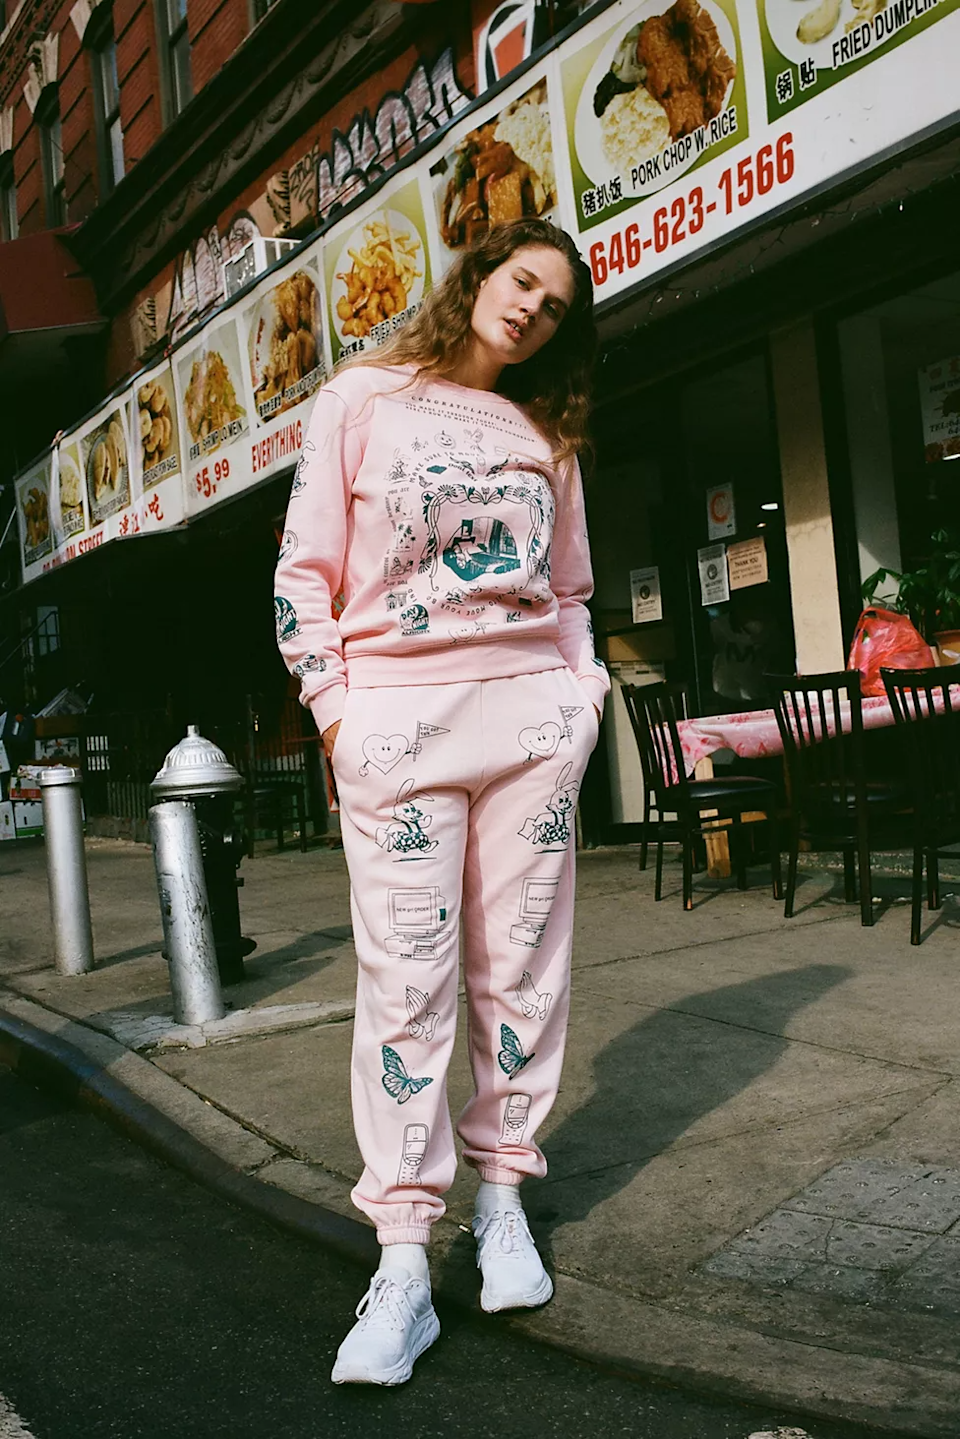 """<h2><a href=""""https://www.urbanoutfitters.com/50-off-sale"""" rel=""""nofollow noopener"""" target=""""_blank"""" data-ylk=""""slk:Urban Outfitters 50% Off Sale"""" class=""""link rapid-noclick-resp"""">Urban Outfitters 50% Off Sale</a></h2><br><strong>Sale:</strong> 50% off hundreds of styles across categories <br><br><strong>Dates:</strong> For a limited time only<br><br><strong>Promo Code: </strong>None <br><br><strong>New Girl Order</strong> Move Your Body Sweatpant, $, available at <a href=""""https://go.skimresources.com/?id=30283X879131&url=https%3A%2F%2Fwww.urbanoutfitters.com%2Fshop%2Fnew-girl-order-move-your-body-sweatpant"""" rel=""""nofollow noopener"""" target=""""_blank"""" data-ylk=""""slk:Urban Outfitters"""" class=""""link rapid-noclick-resp"""">Urban Outfitters</a>"""